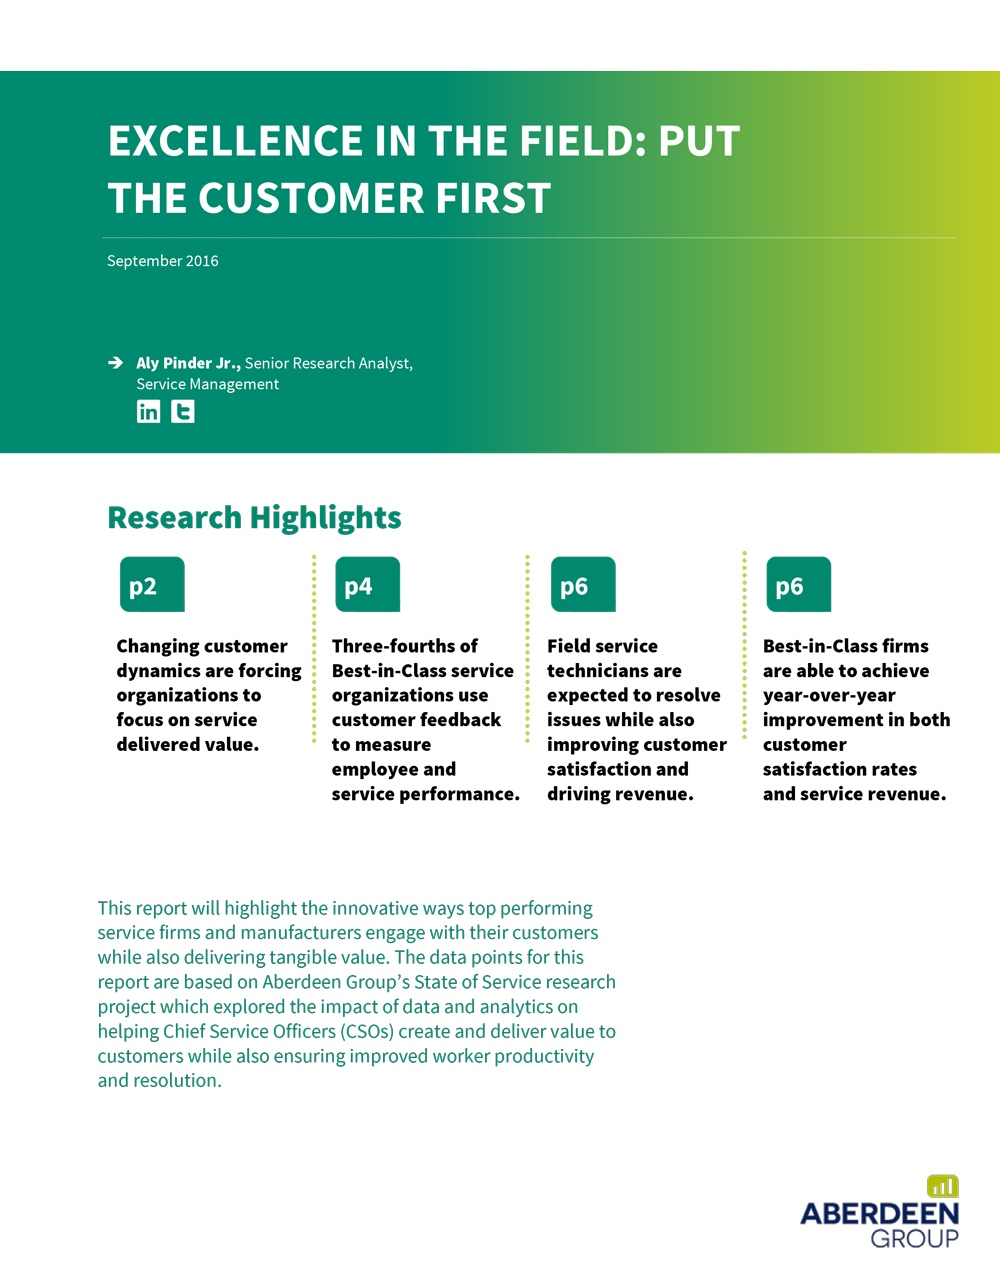 Excellence in the Field: Put the Customer First